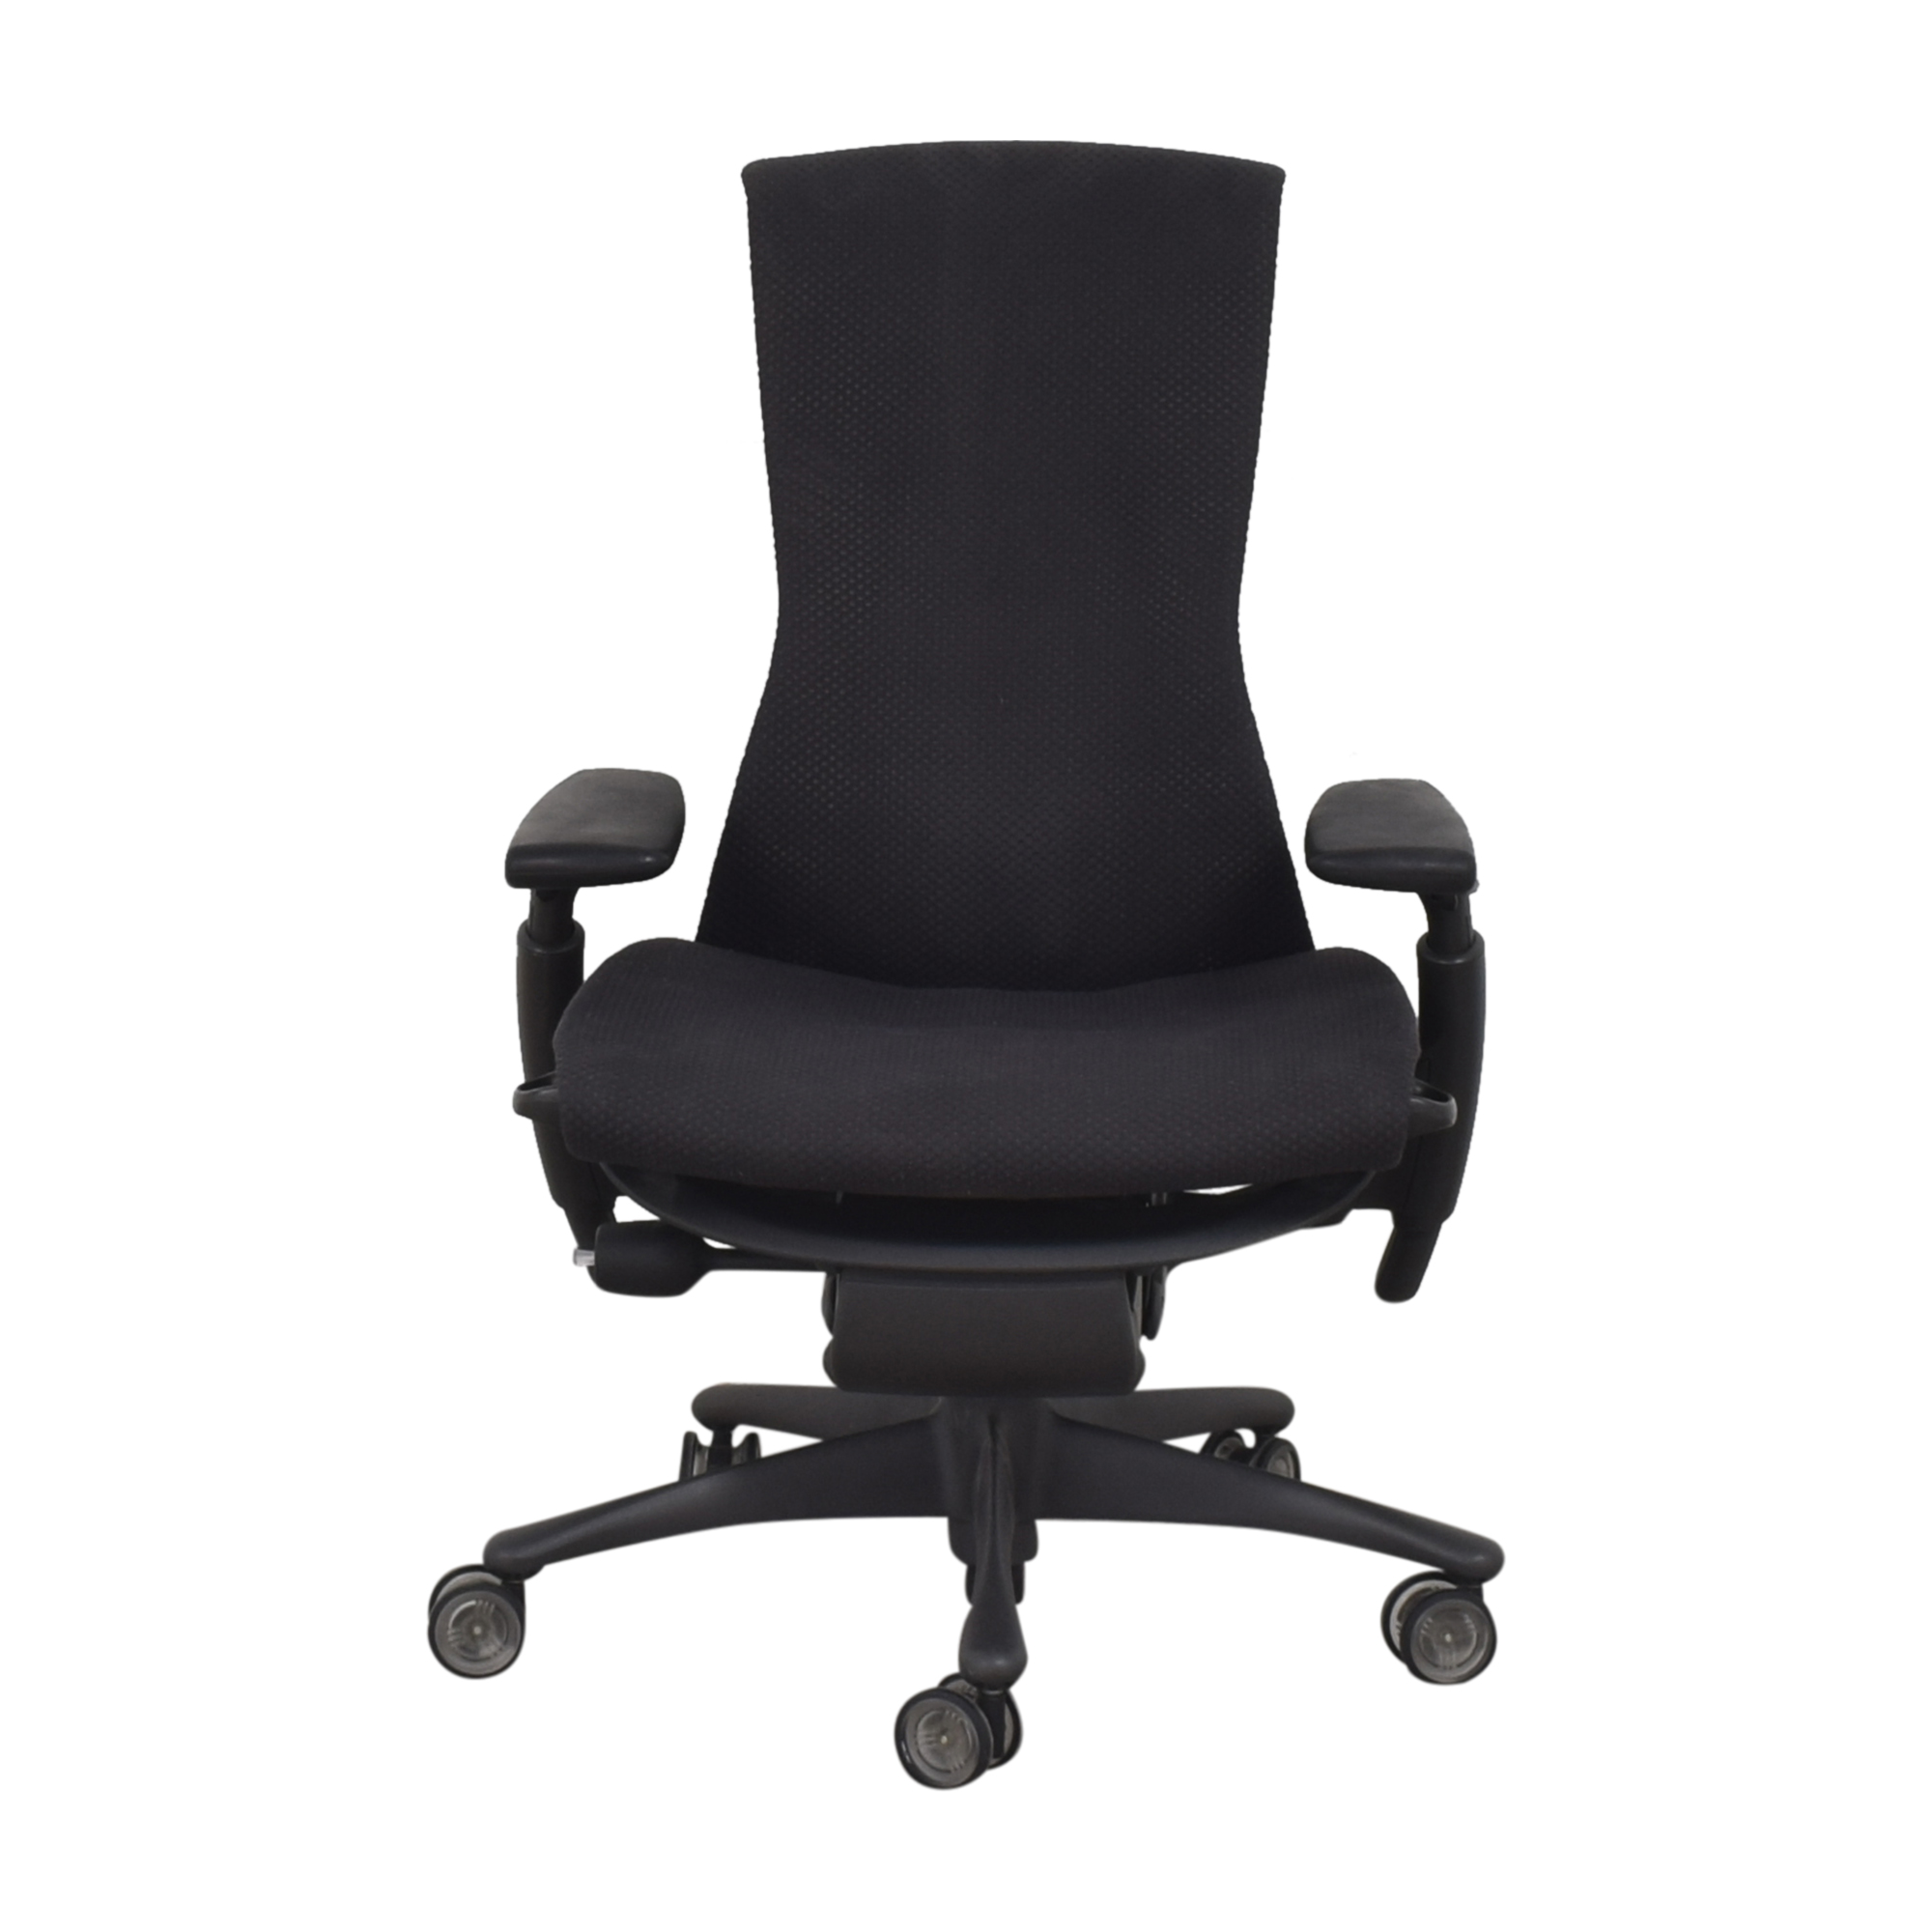 Herman Miller Herman Miller Embody Chair black and gray